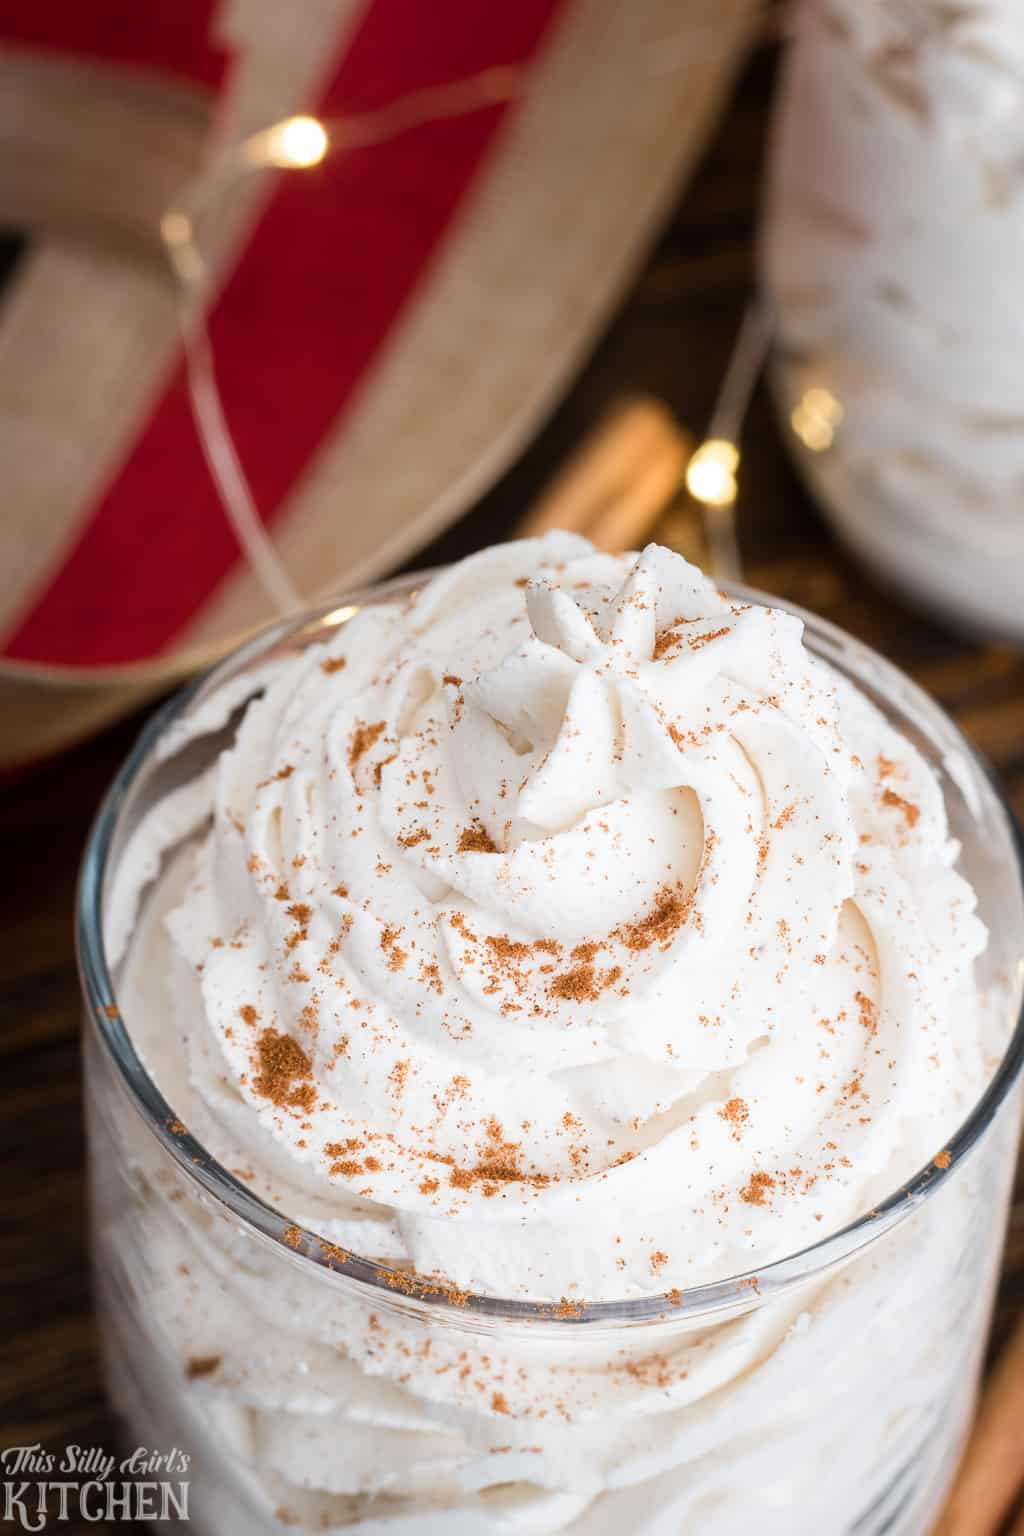 Cinnamon Stabilized Whipped Cream, foolproof recipe for stabilized whipped cream with a festive touch! #Recipe from ThisSillyGirlsKitchen.com #cinnamon #stabilizedwhippedcream #homemadewhippedcream